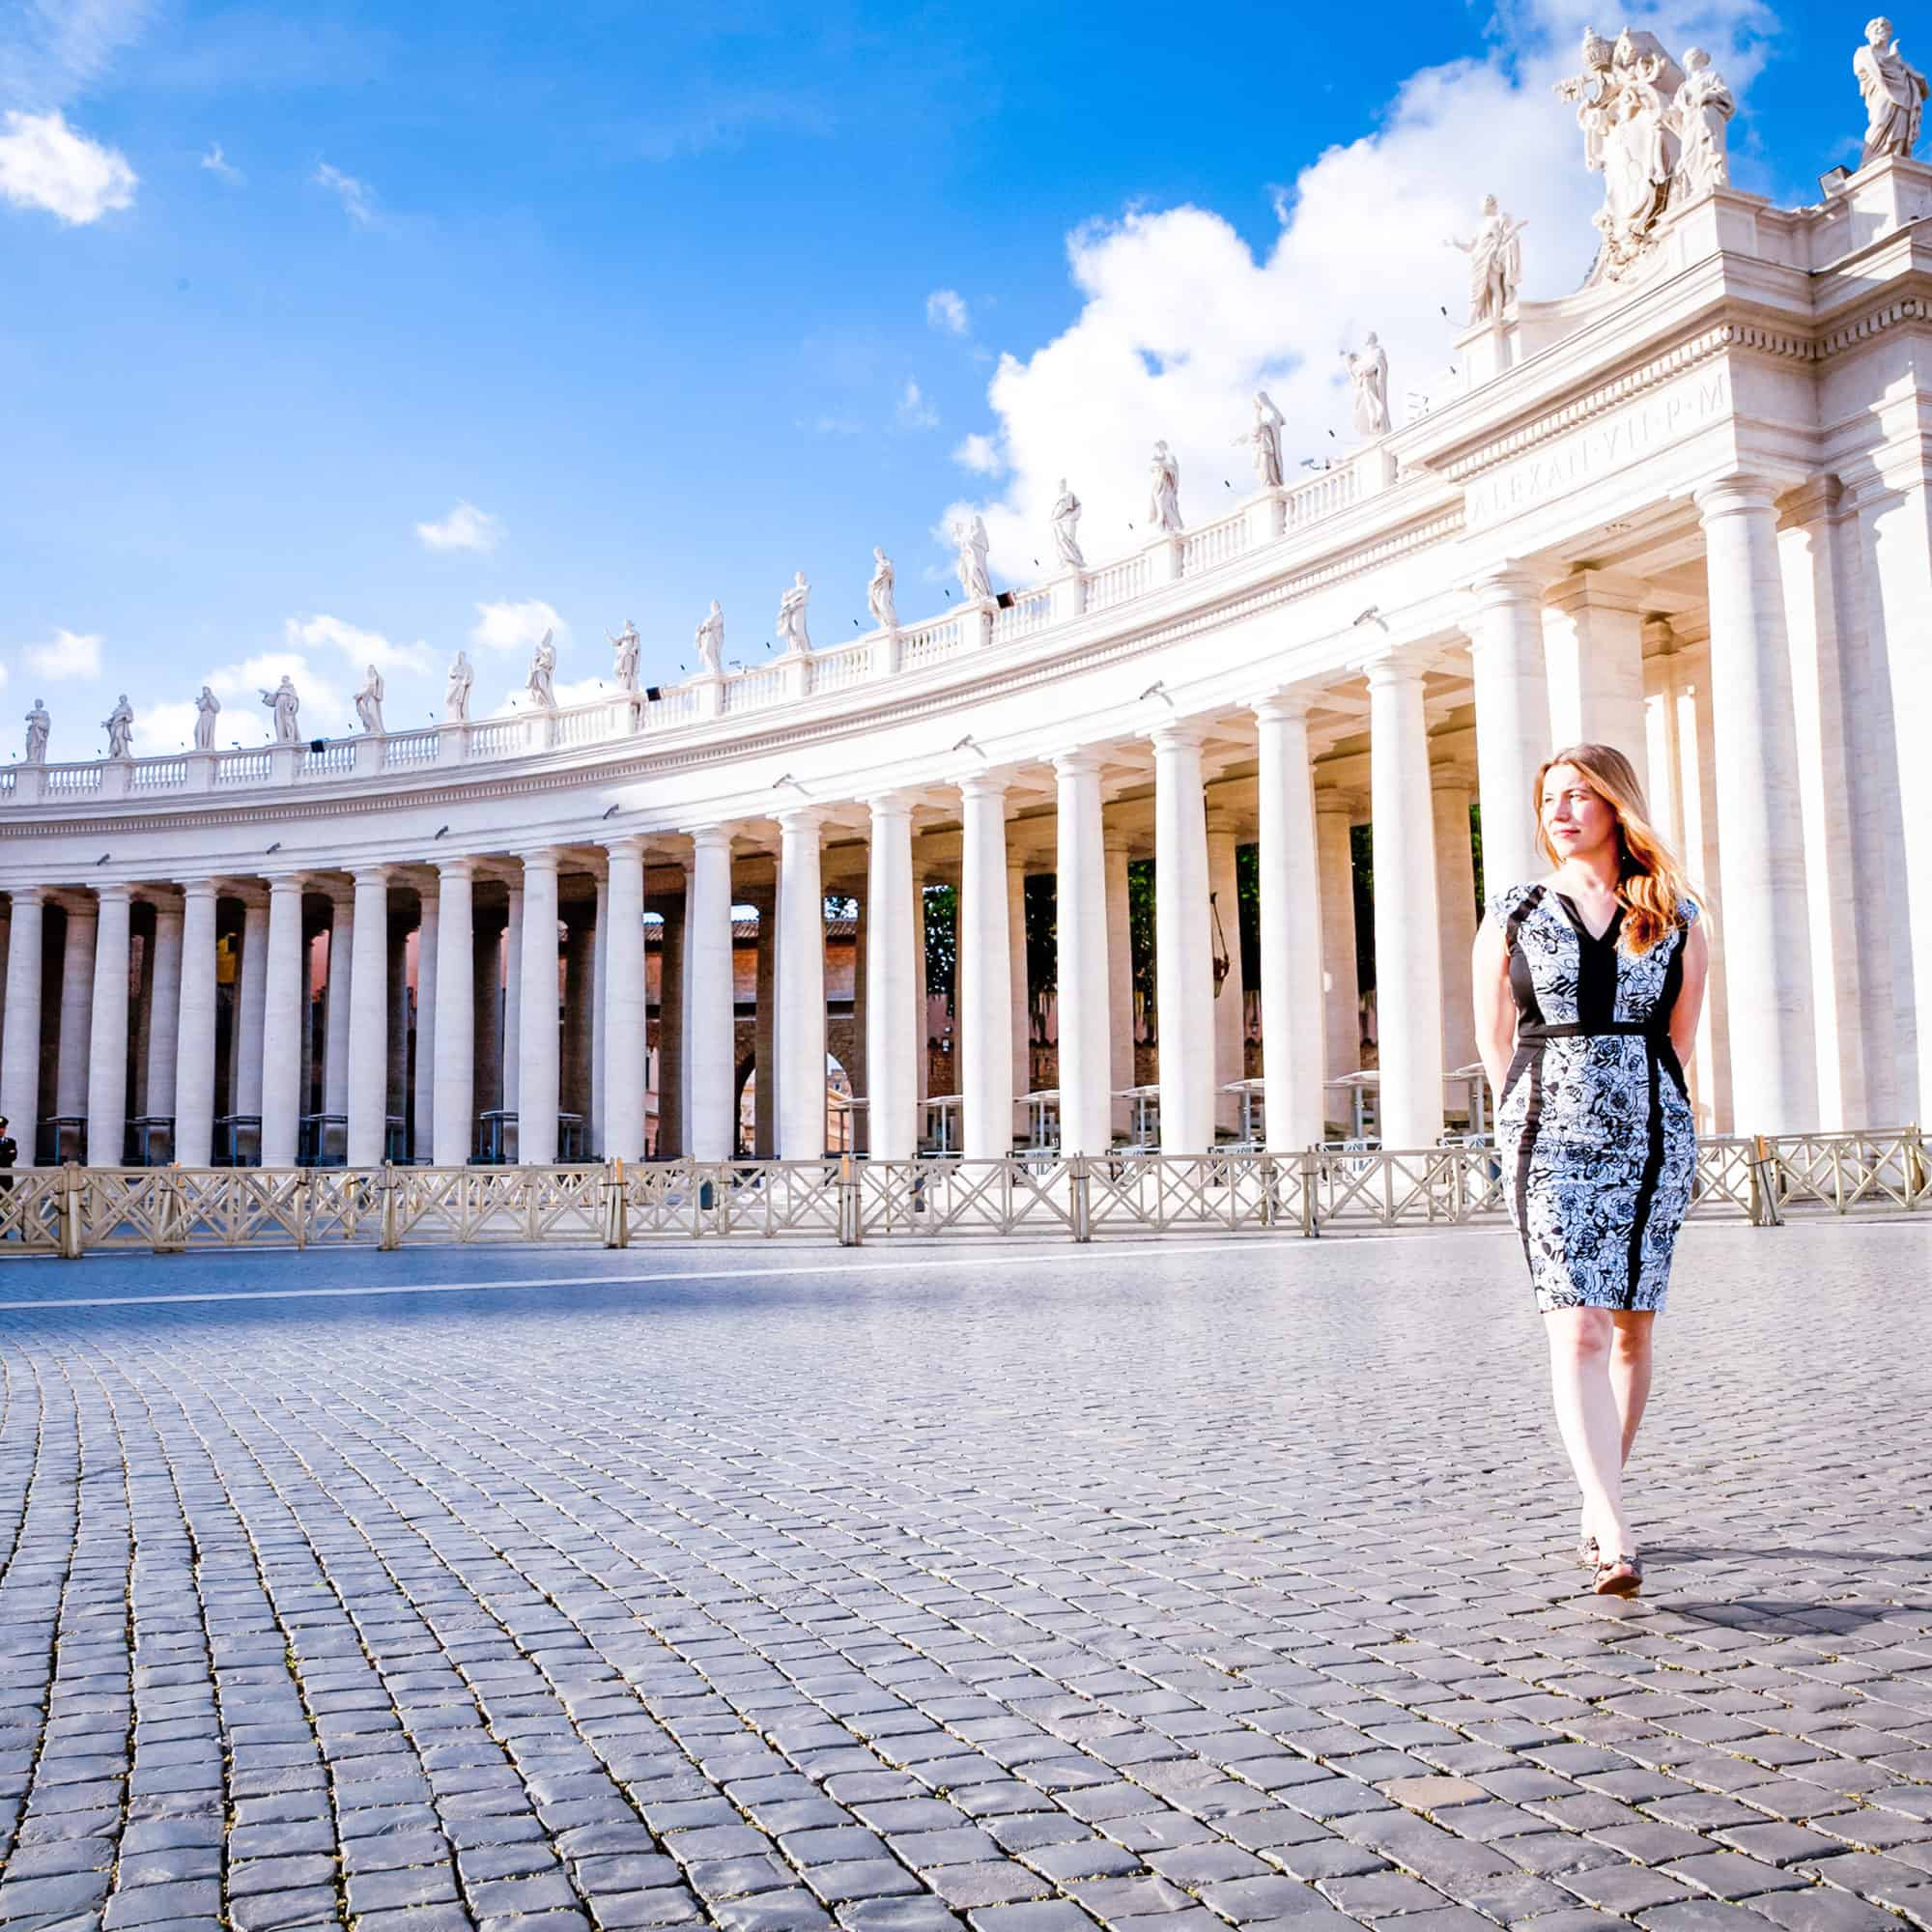 Italy - Rome- Abigail King walking outside the Vatican